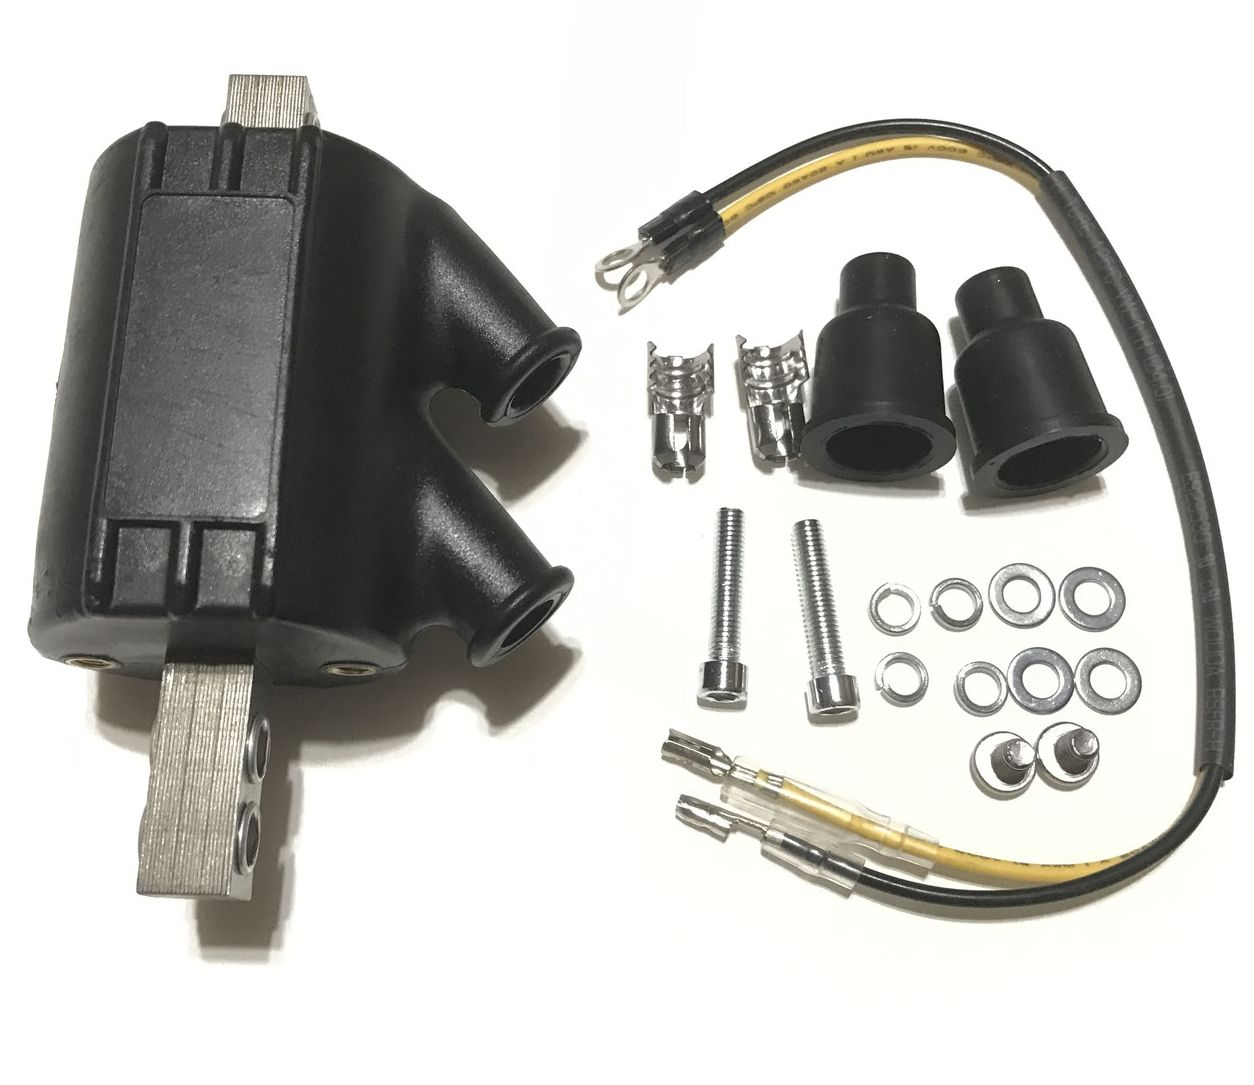 H.Craft High Power Ignition Coil 3Ω Dual Lead